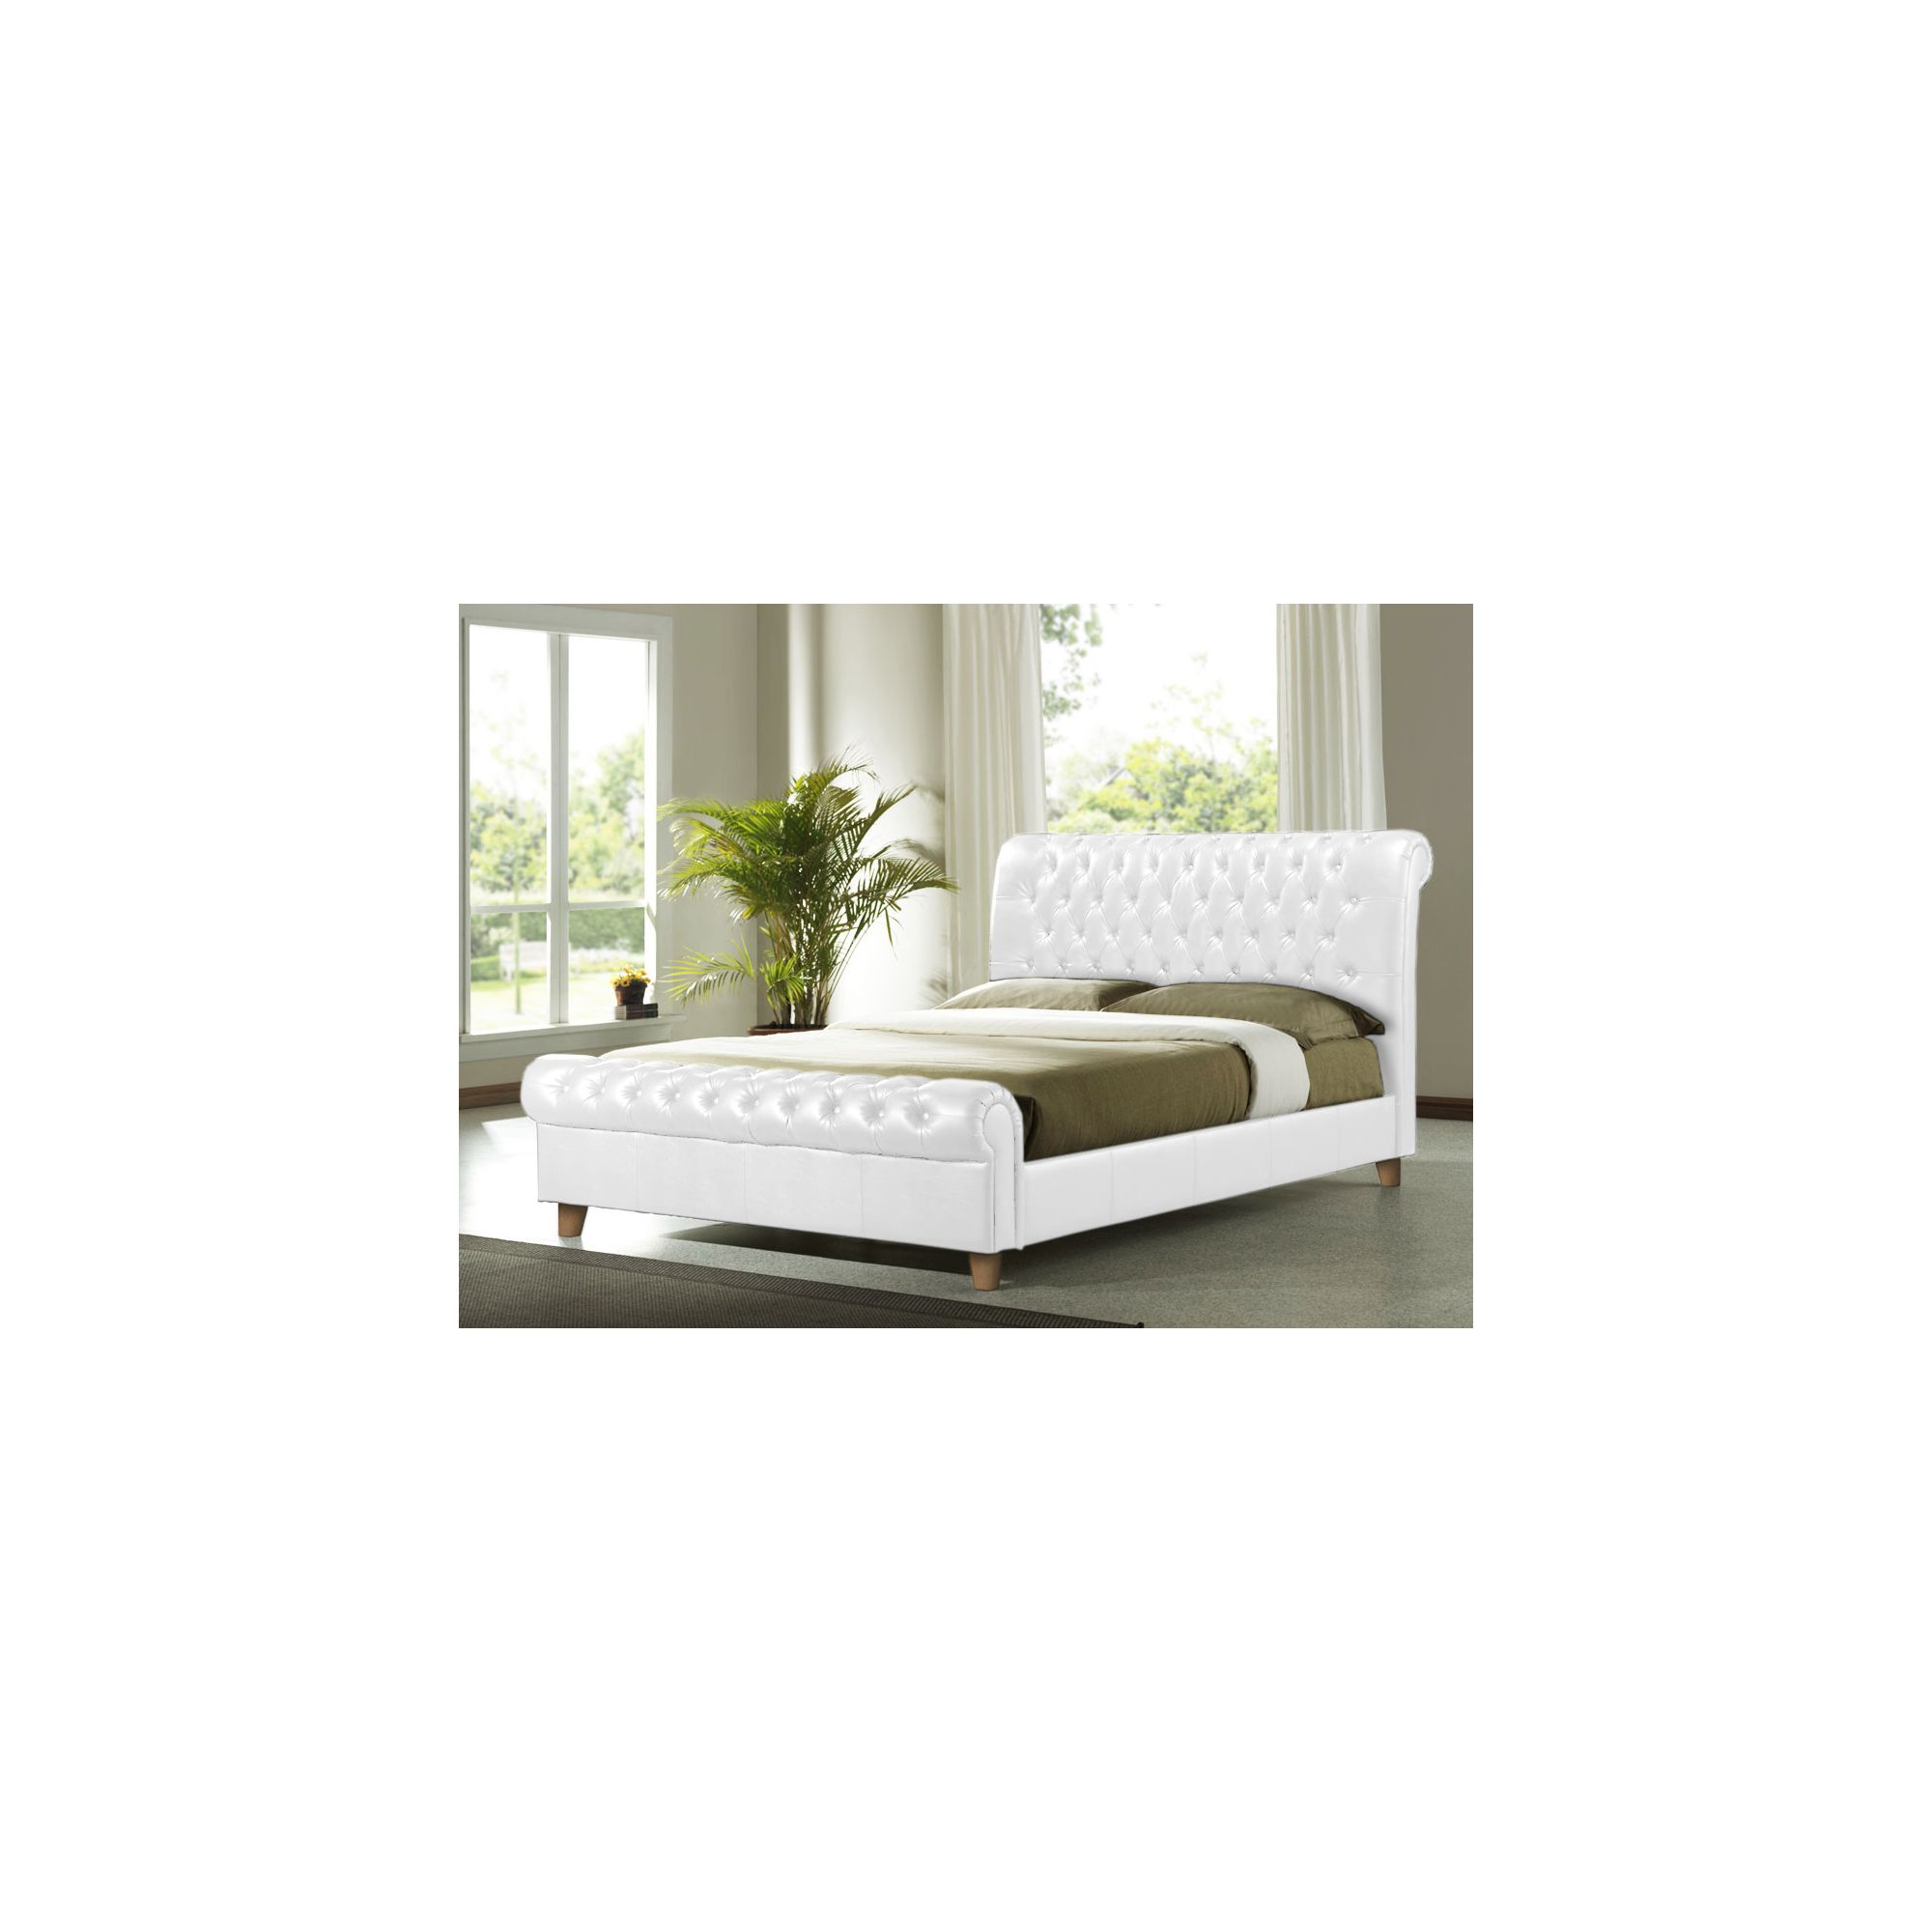 Altruna Richmond Faux Leather Bed Frame - Double - White at Tescos Direct